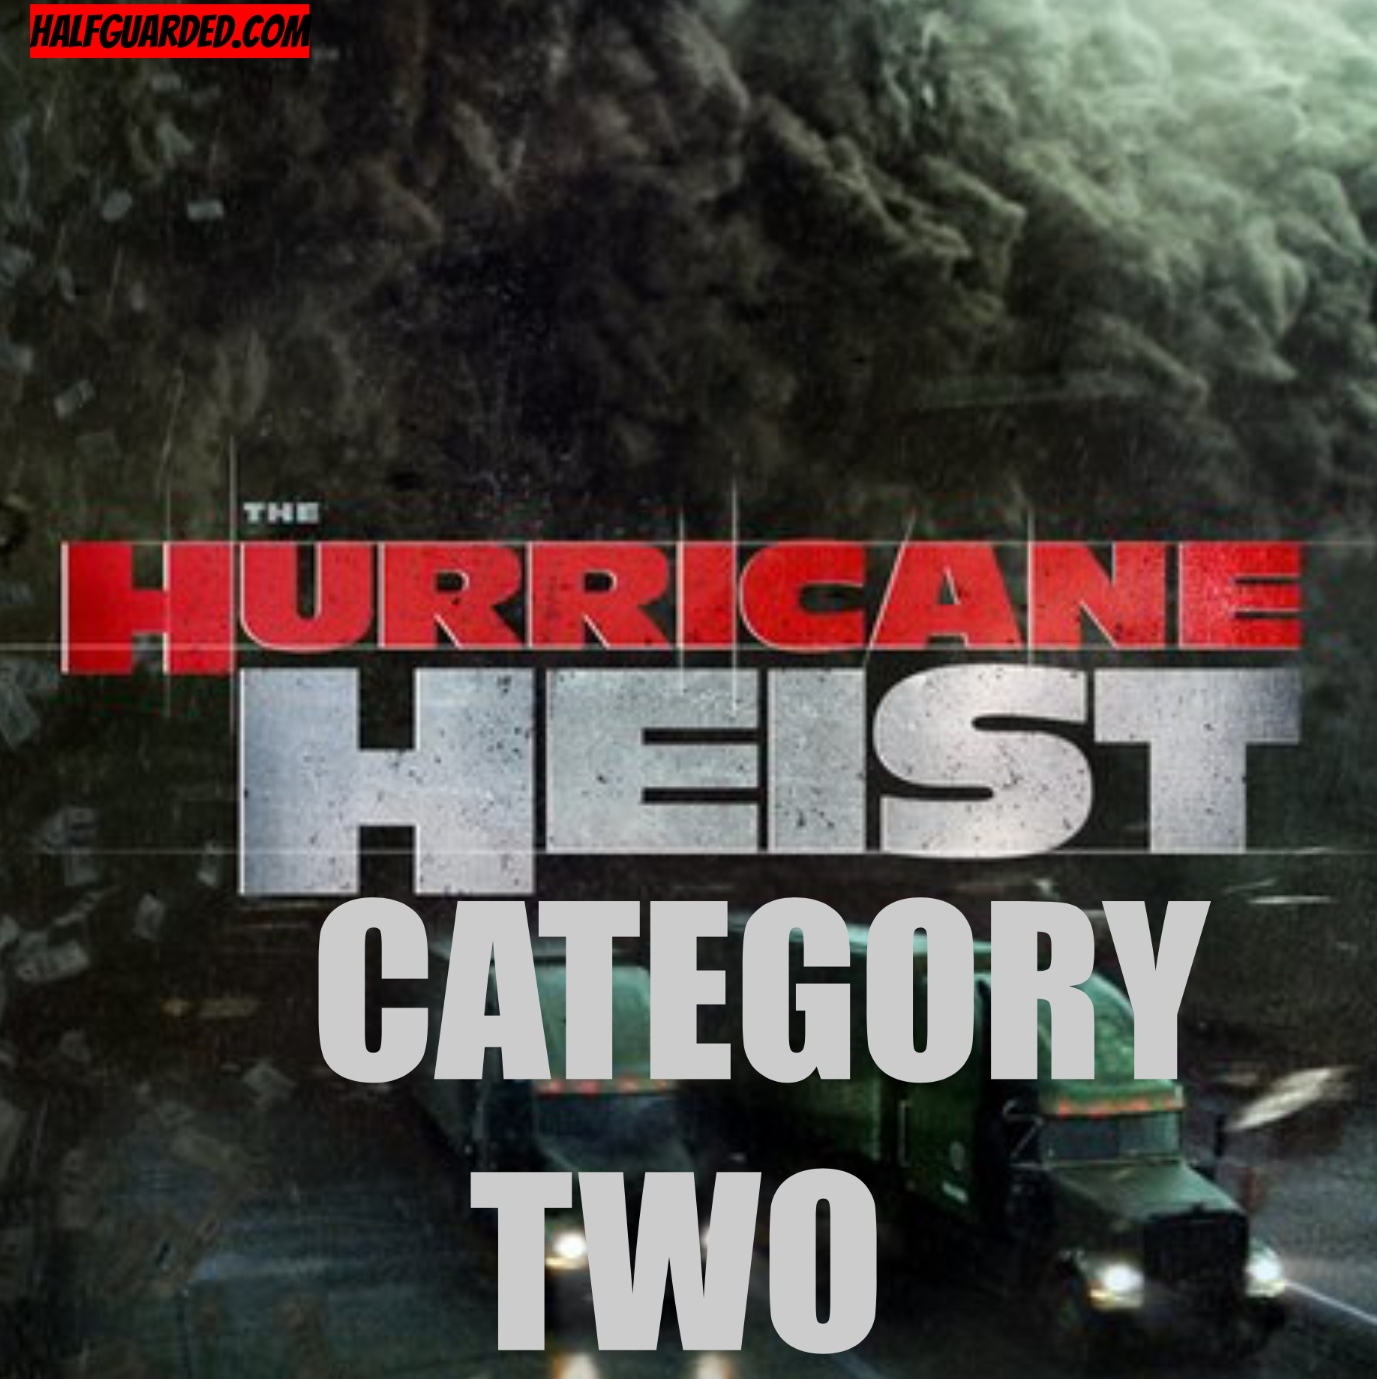 Hurricane Heist 2 (2020) Cast, Plot, Rumors, and Release Date News